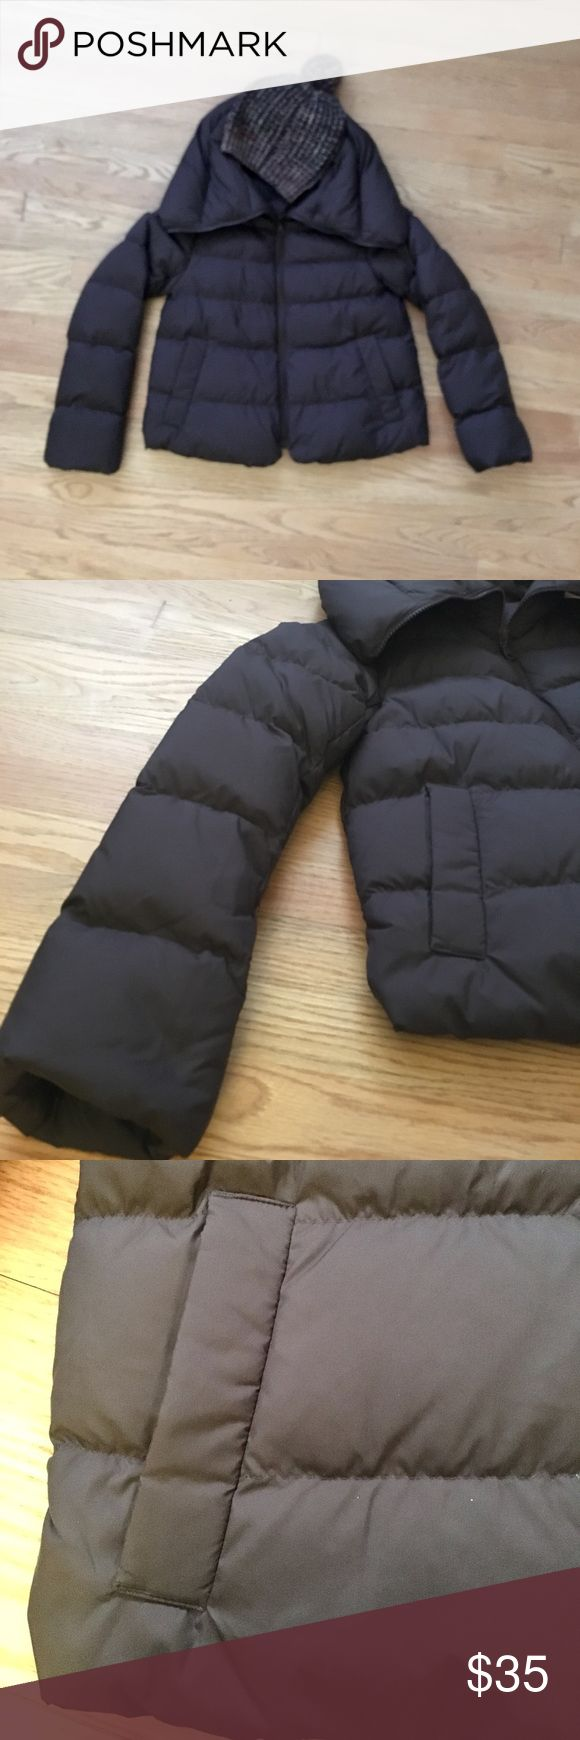 NBW✨ Down Puffer Jacket Bought this a size too small. Just tried on. In perfect condition-- basically new! Shell is soft and fill is very puffy and cozy. True XS. Comment with questions! Uniqlo Jackets & Coats Puffers